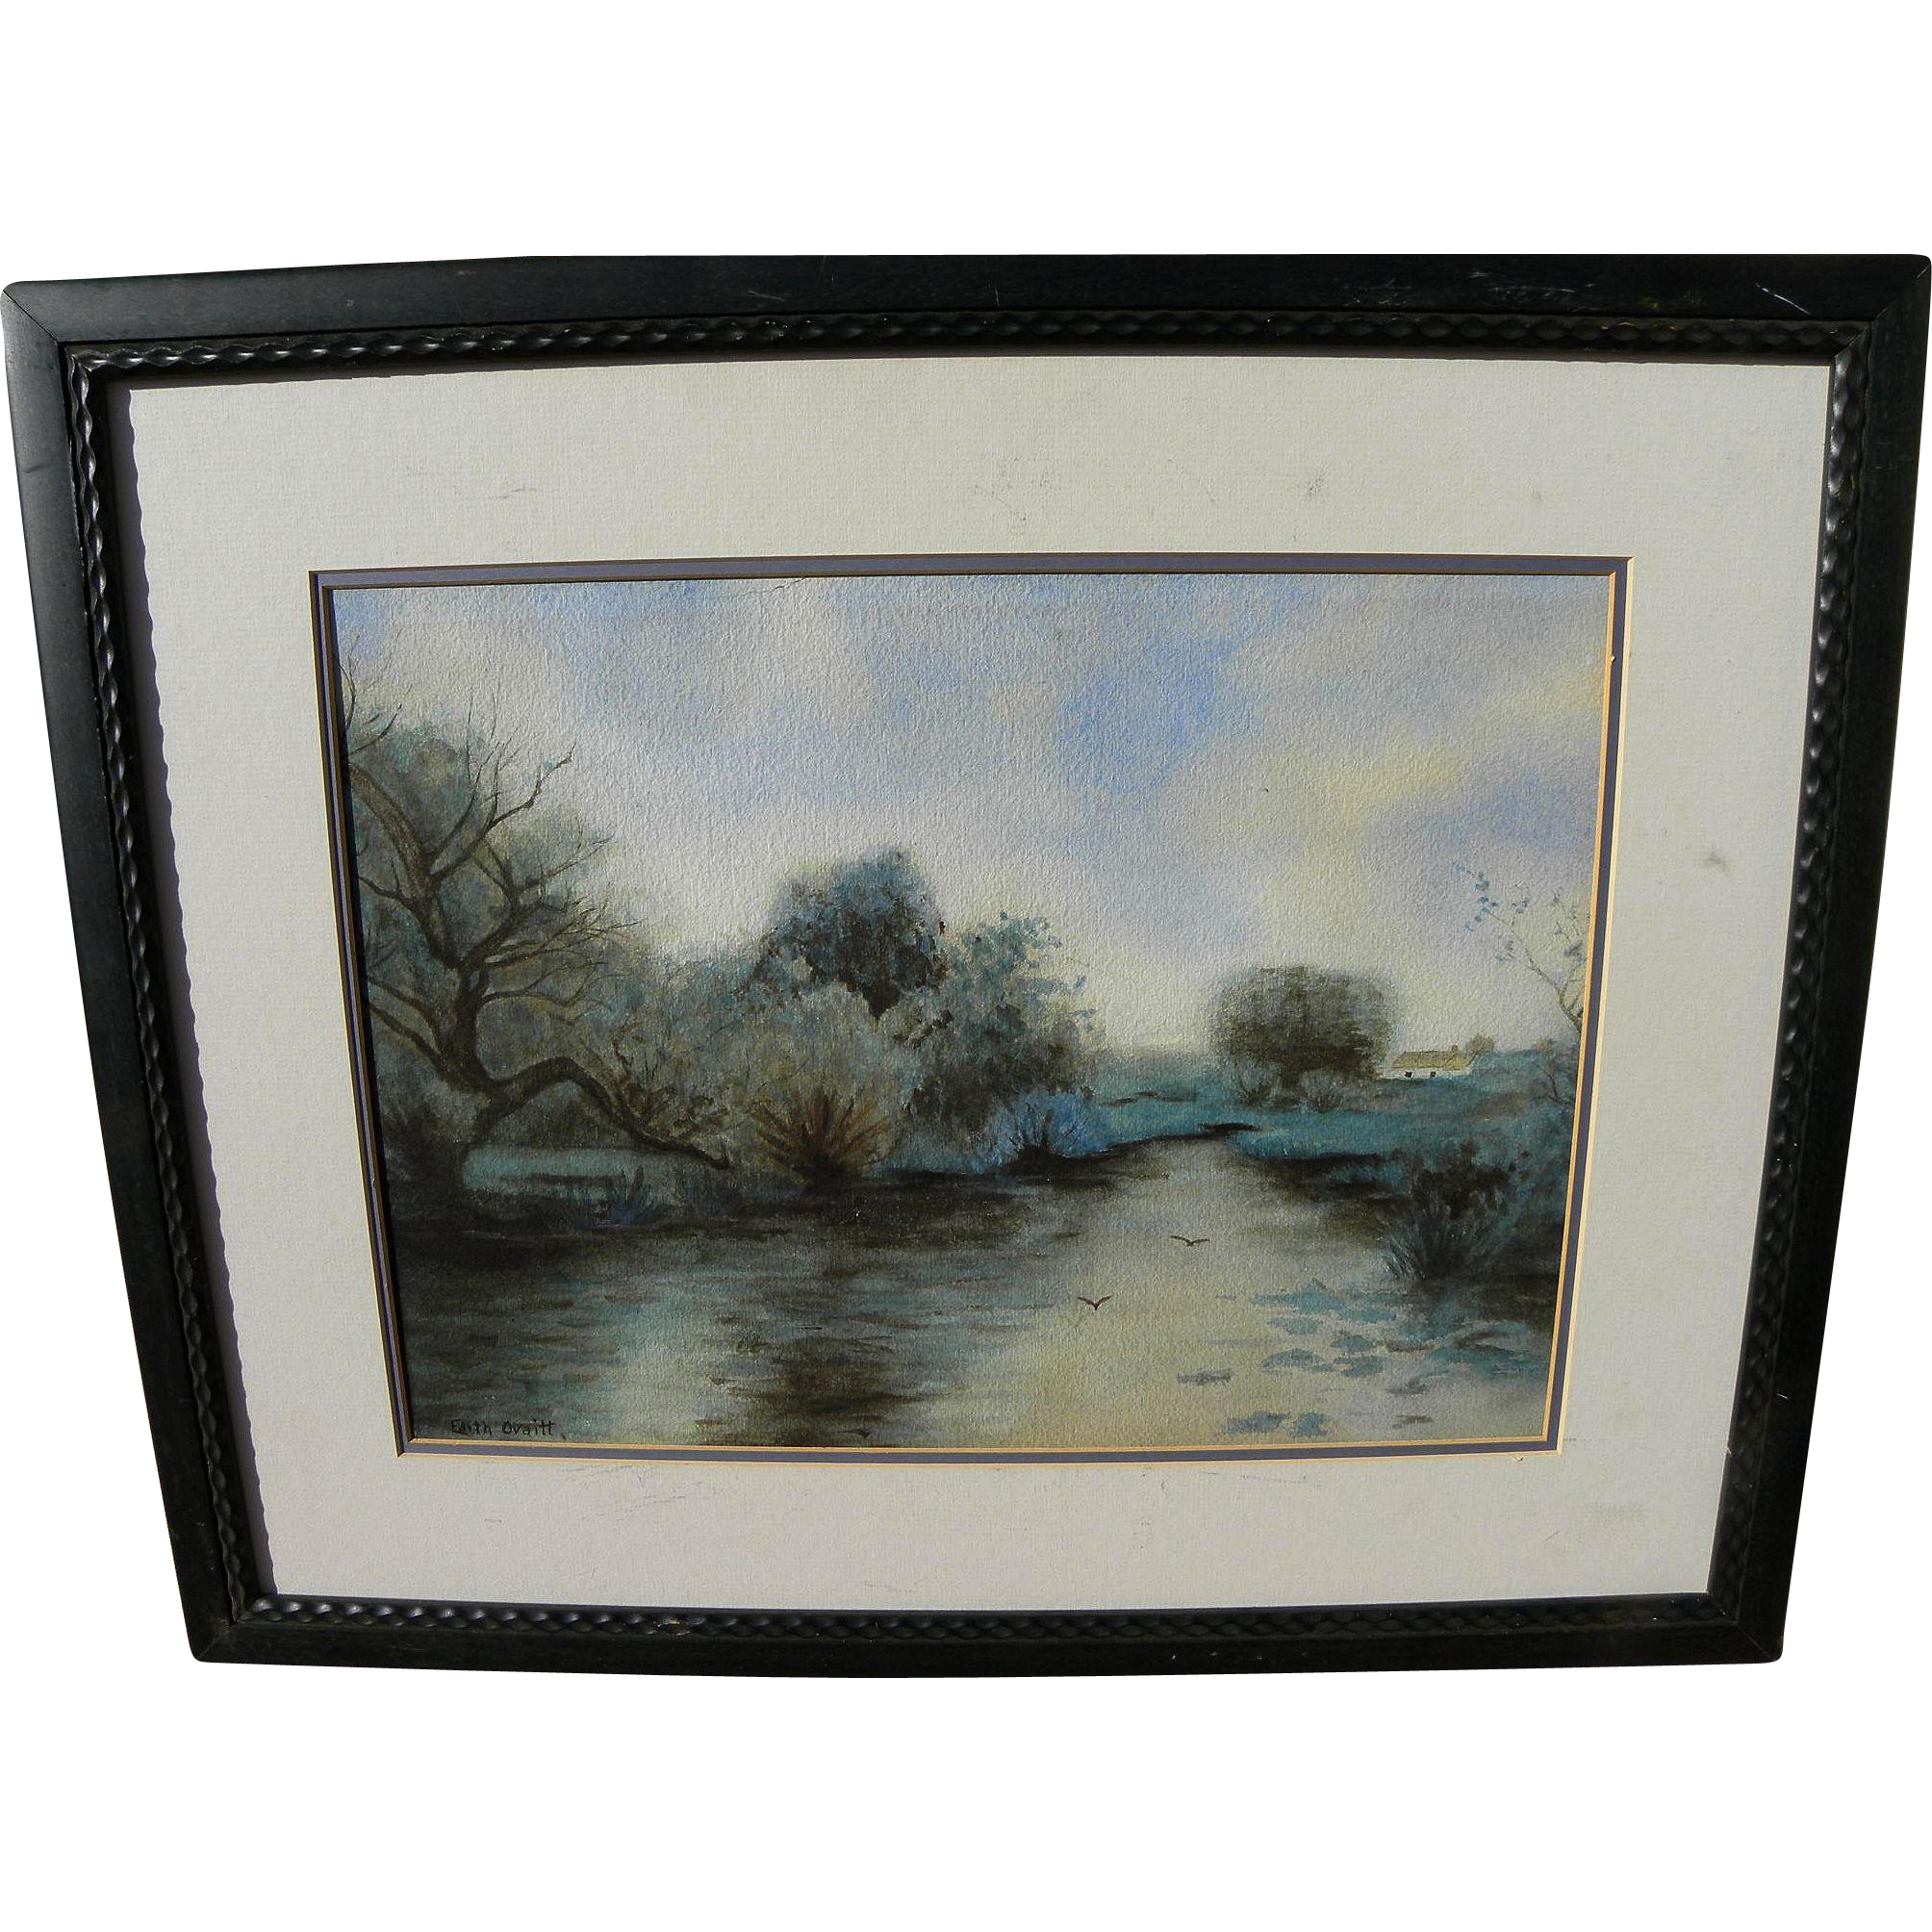 American vintage watercolor landscape painting signed Edith Ovaitt